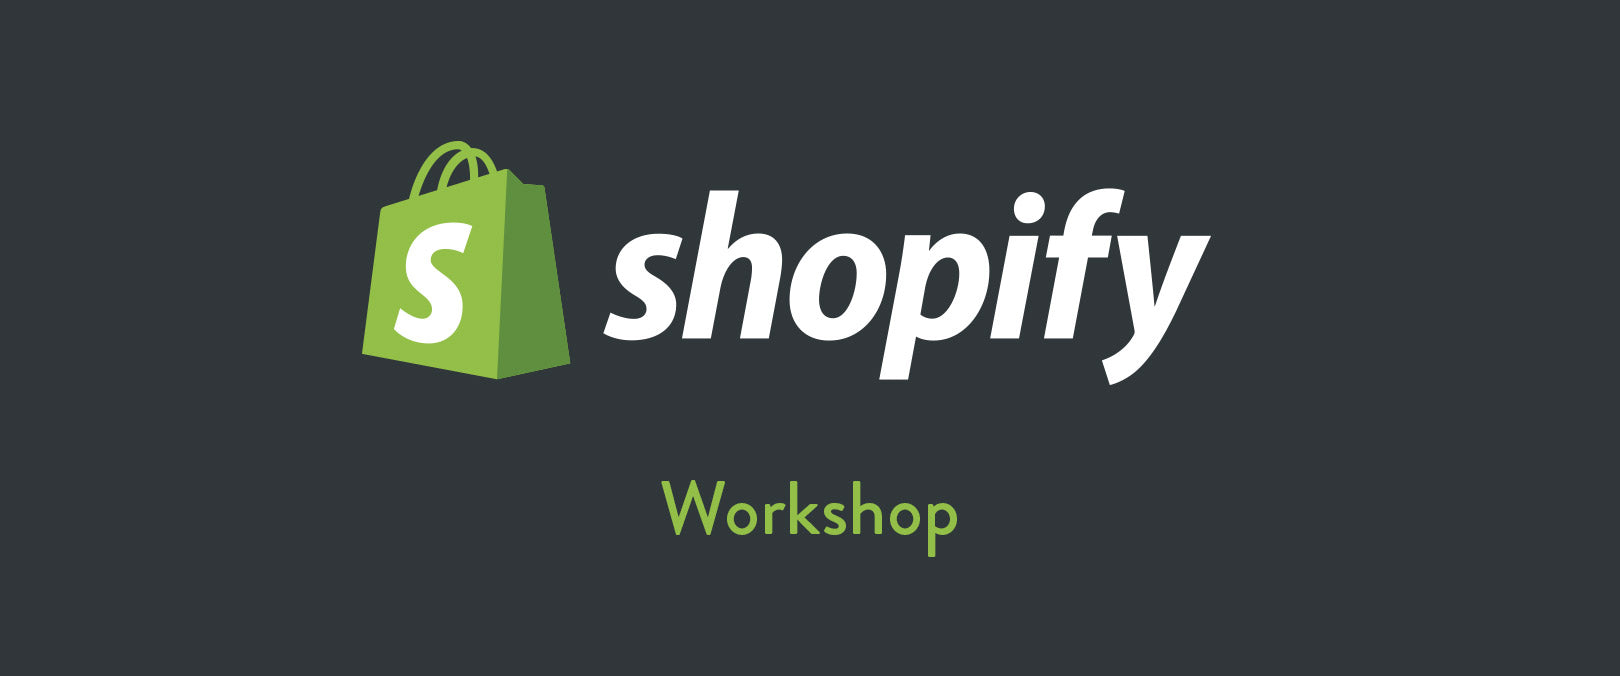 Nuevo workshop para Shopify Partners en Puerto Rico